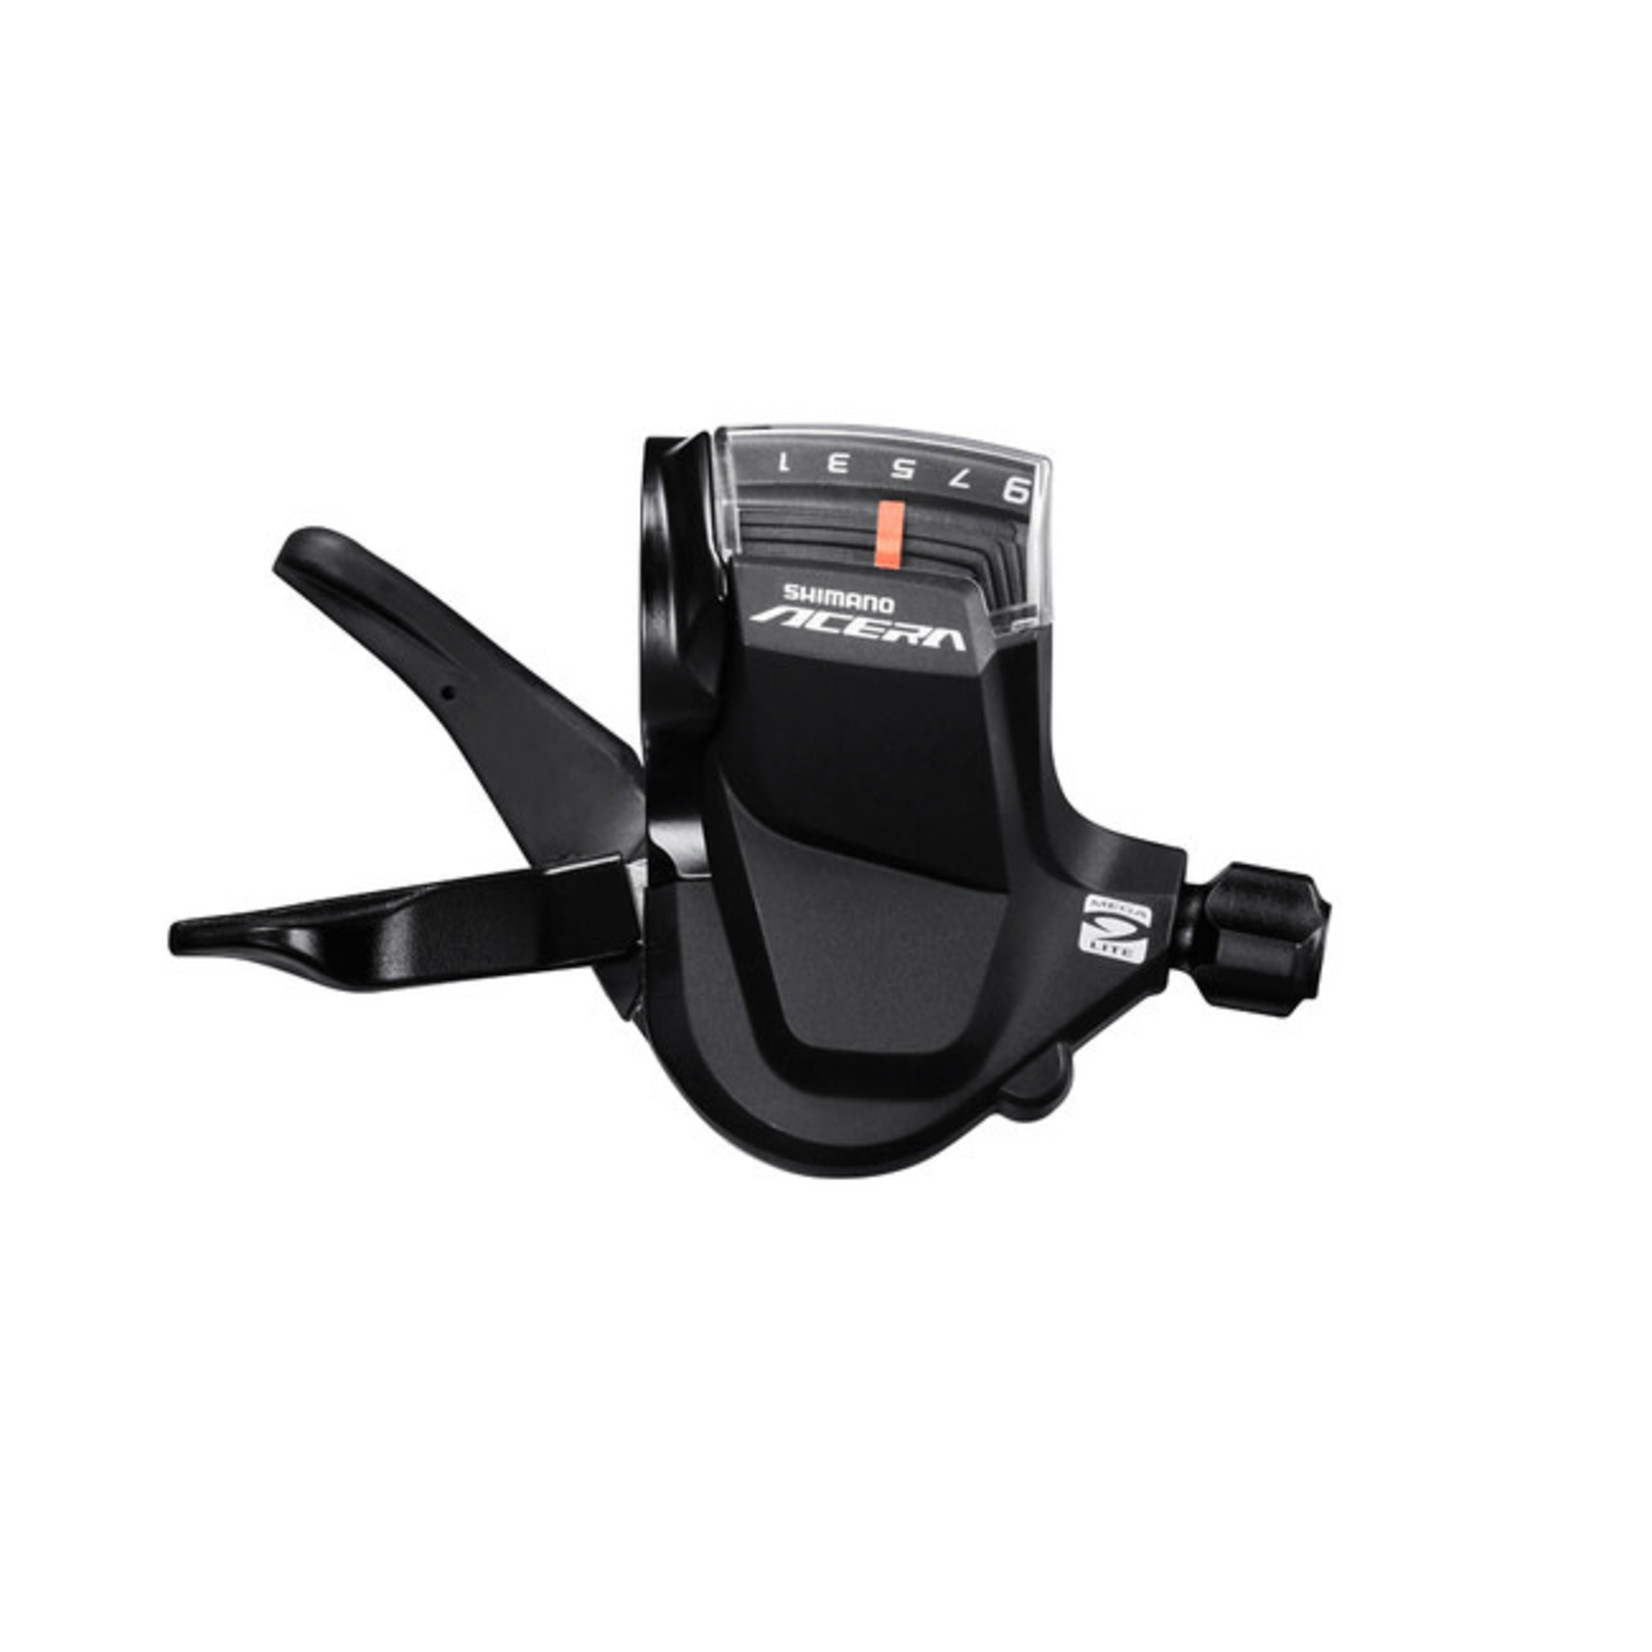 Shimano SHIFT LEVER, SL-M3000-R, ACERA, RIGHT, 9-SPEED, RAPIDFIRE PLUS, W/ OPTICAL GEAR DISPLAY